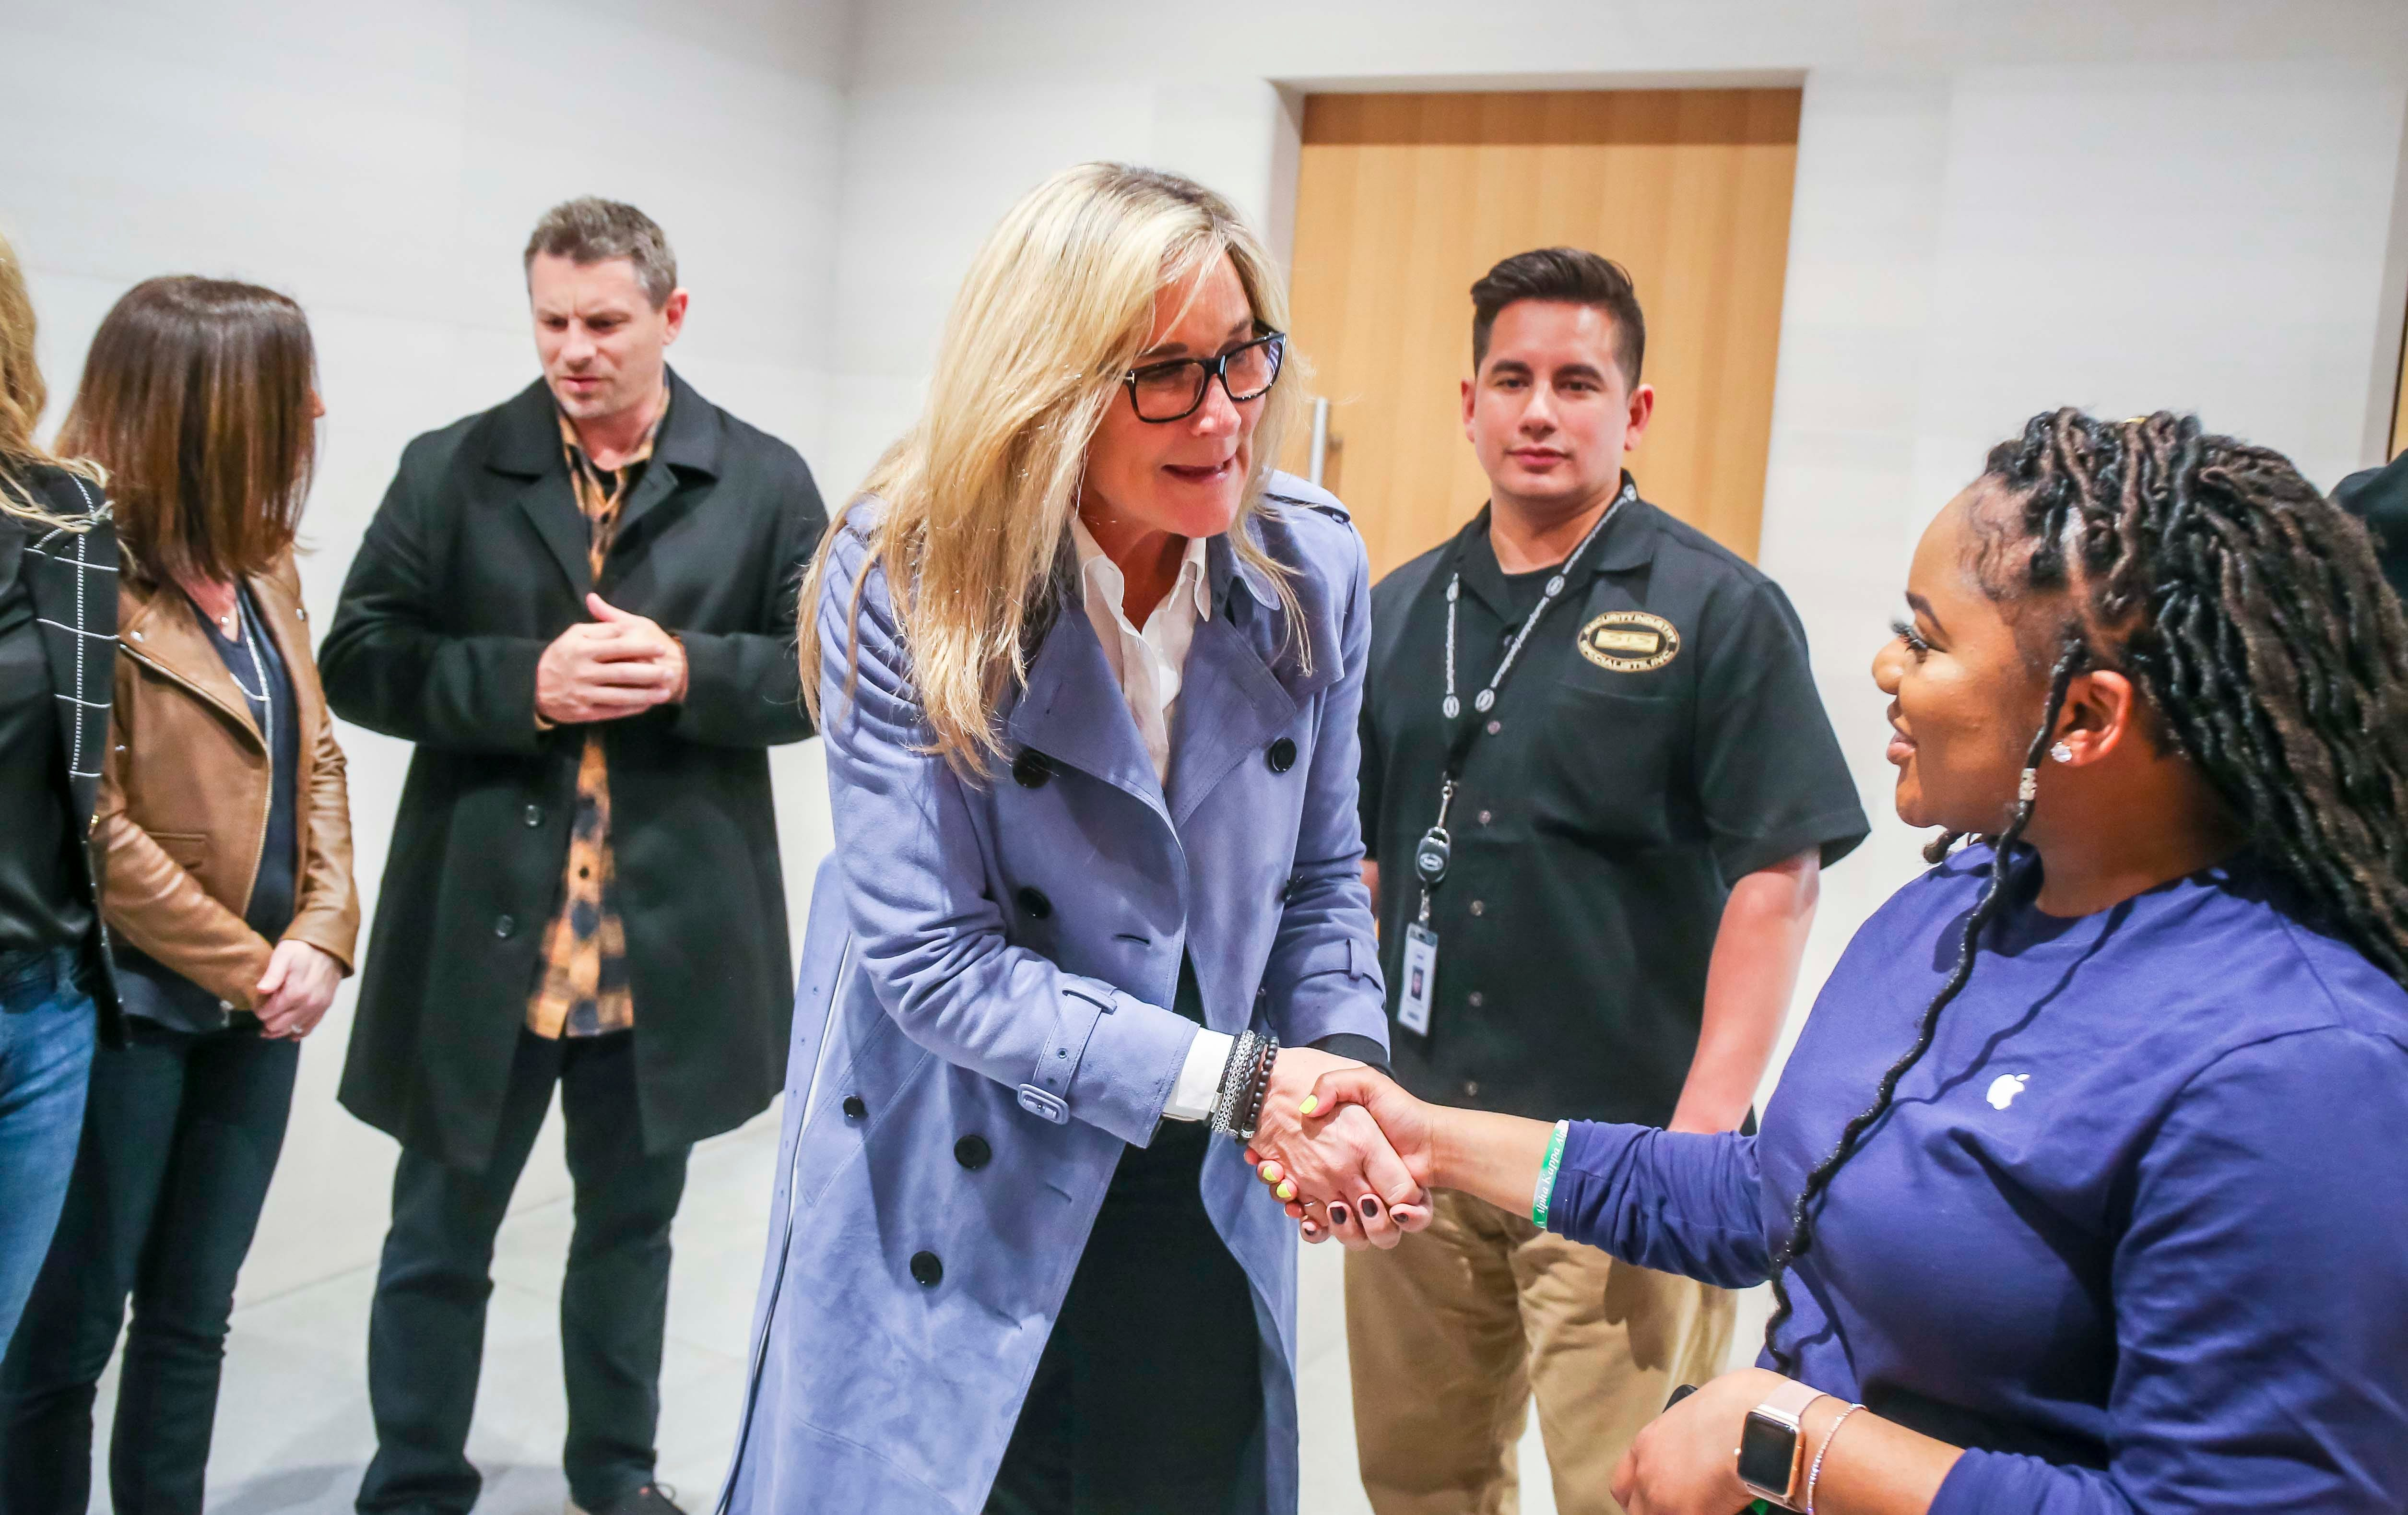 Apple retail chief Angela Ahrendts out suddenly